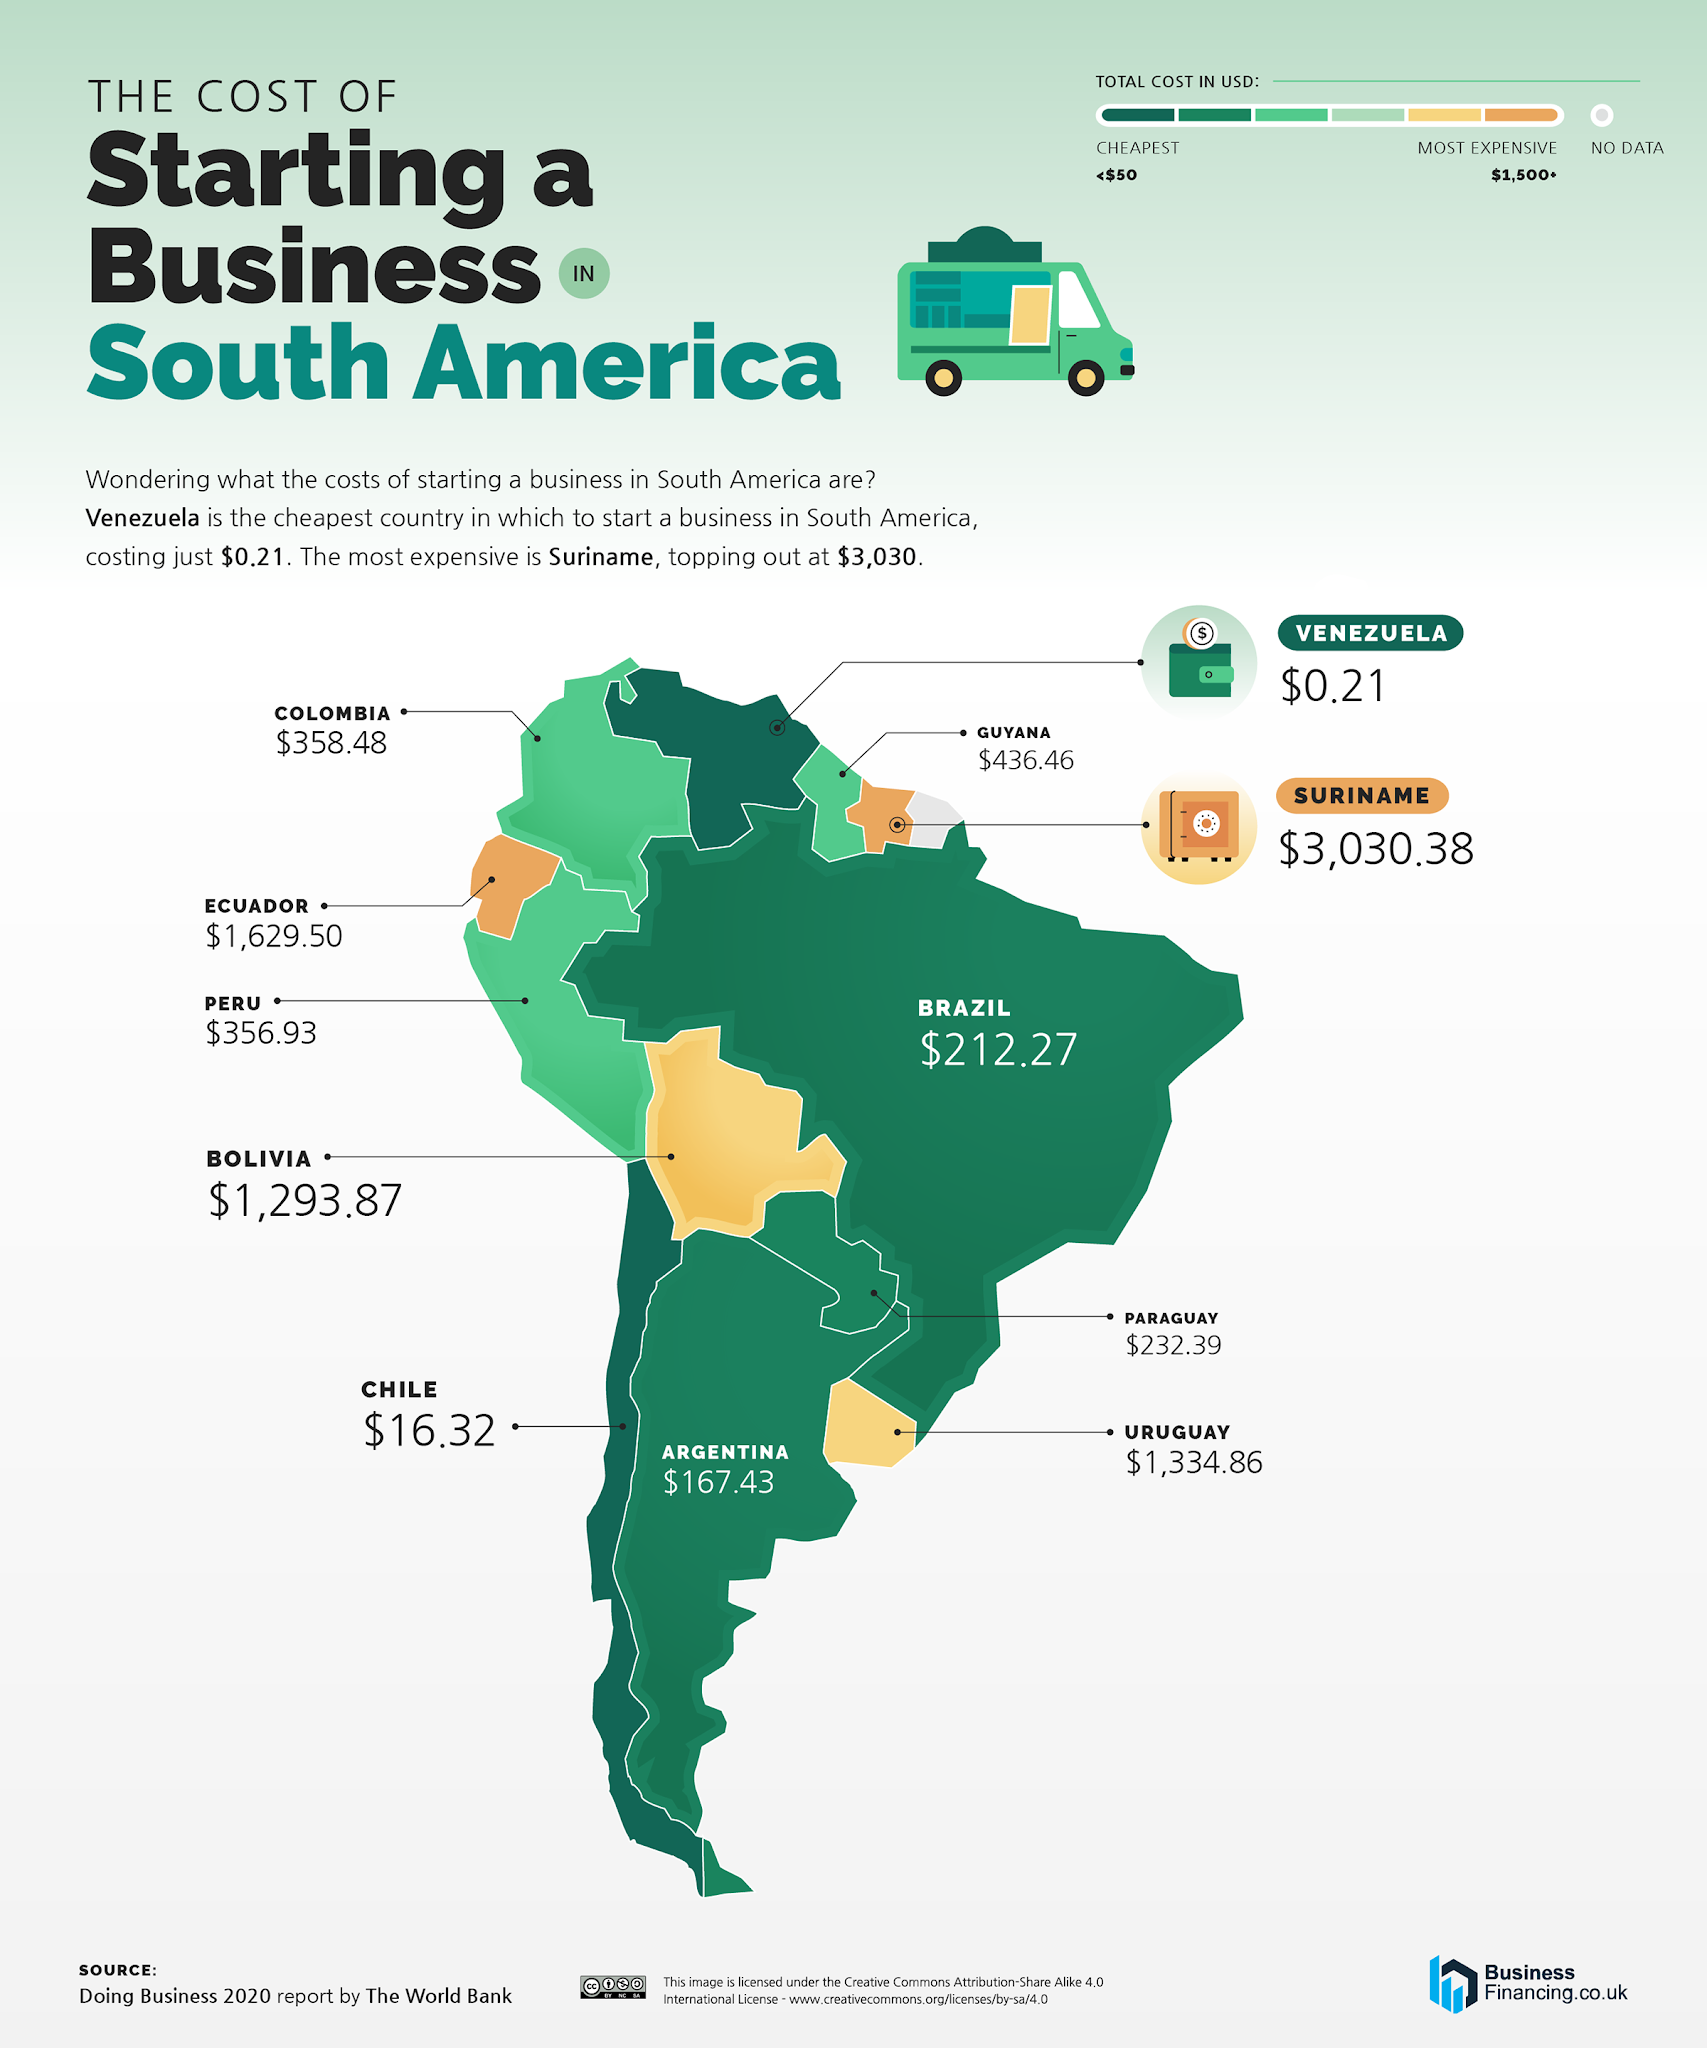 The Cost of Starting a Business in South America